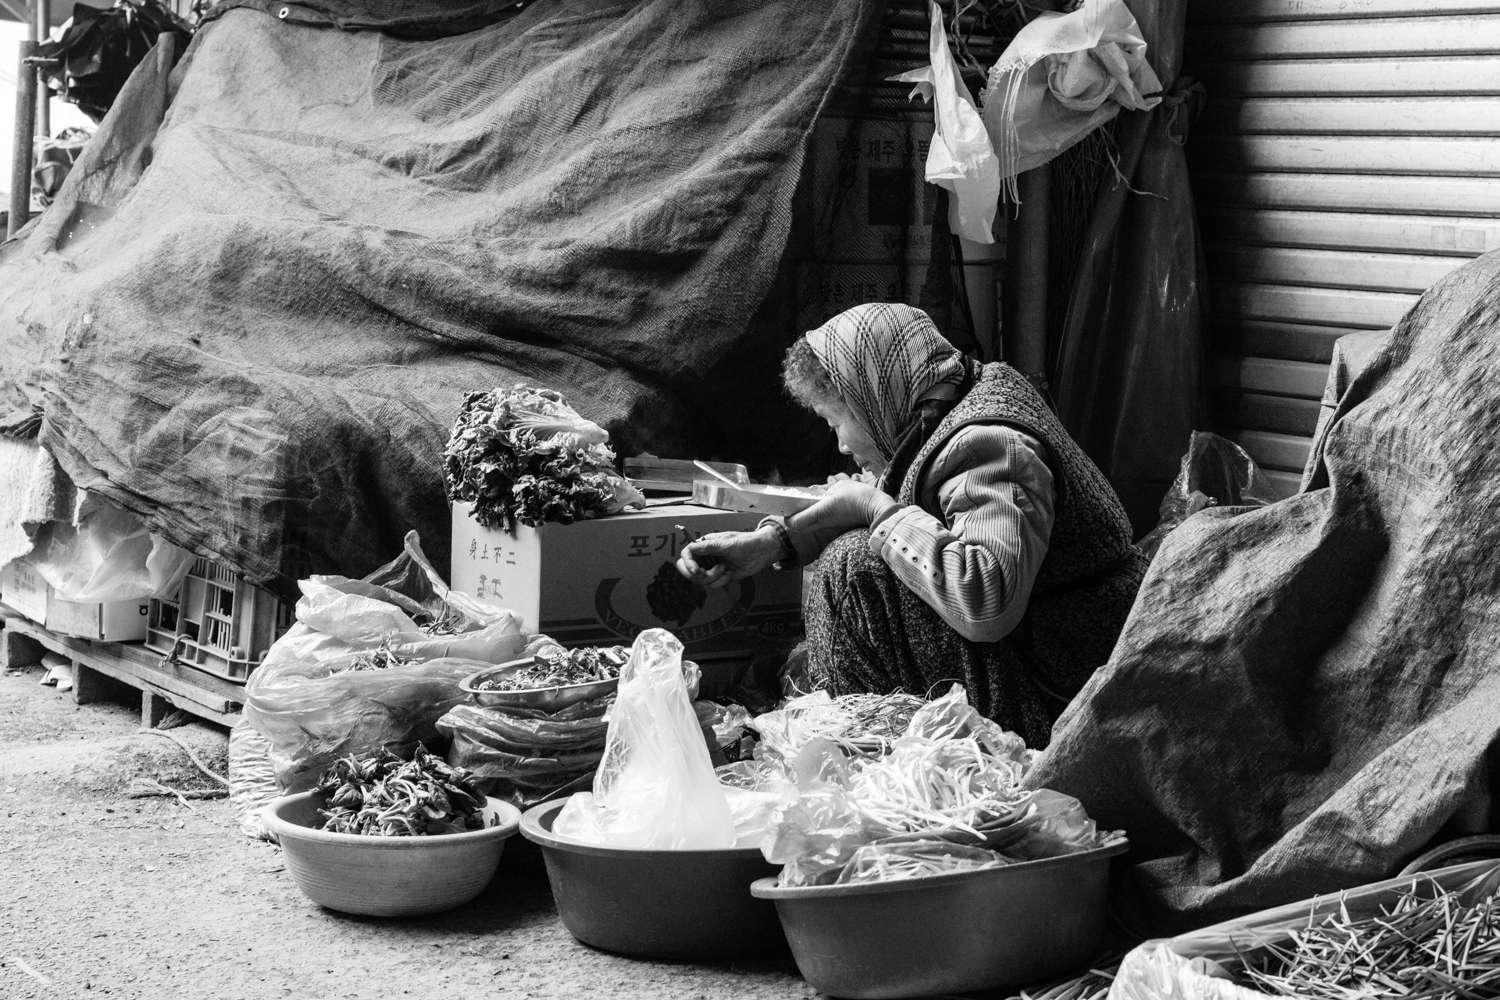 A lunch break for one of the poorer merchants at Yang-dong market. Vendors like this one likely grow their own produce in whatever meagre plots of land are available around their house. The produce is often wilted, and there is never much on offer.